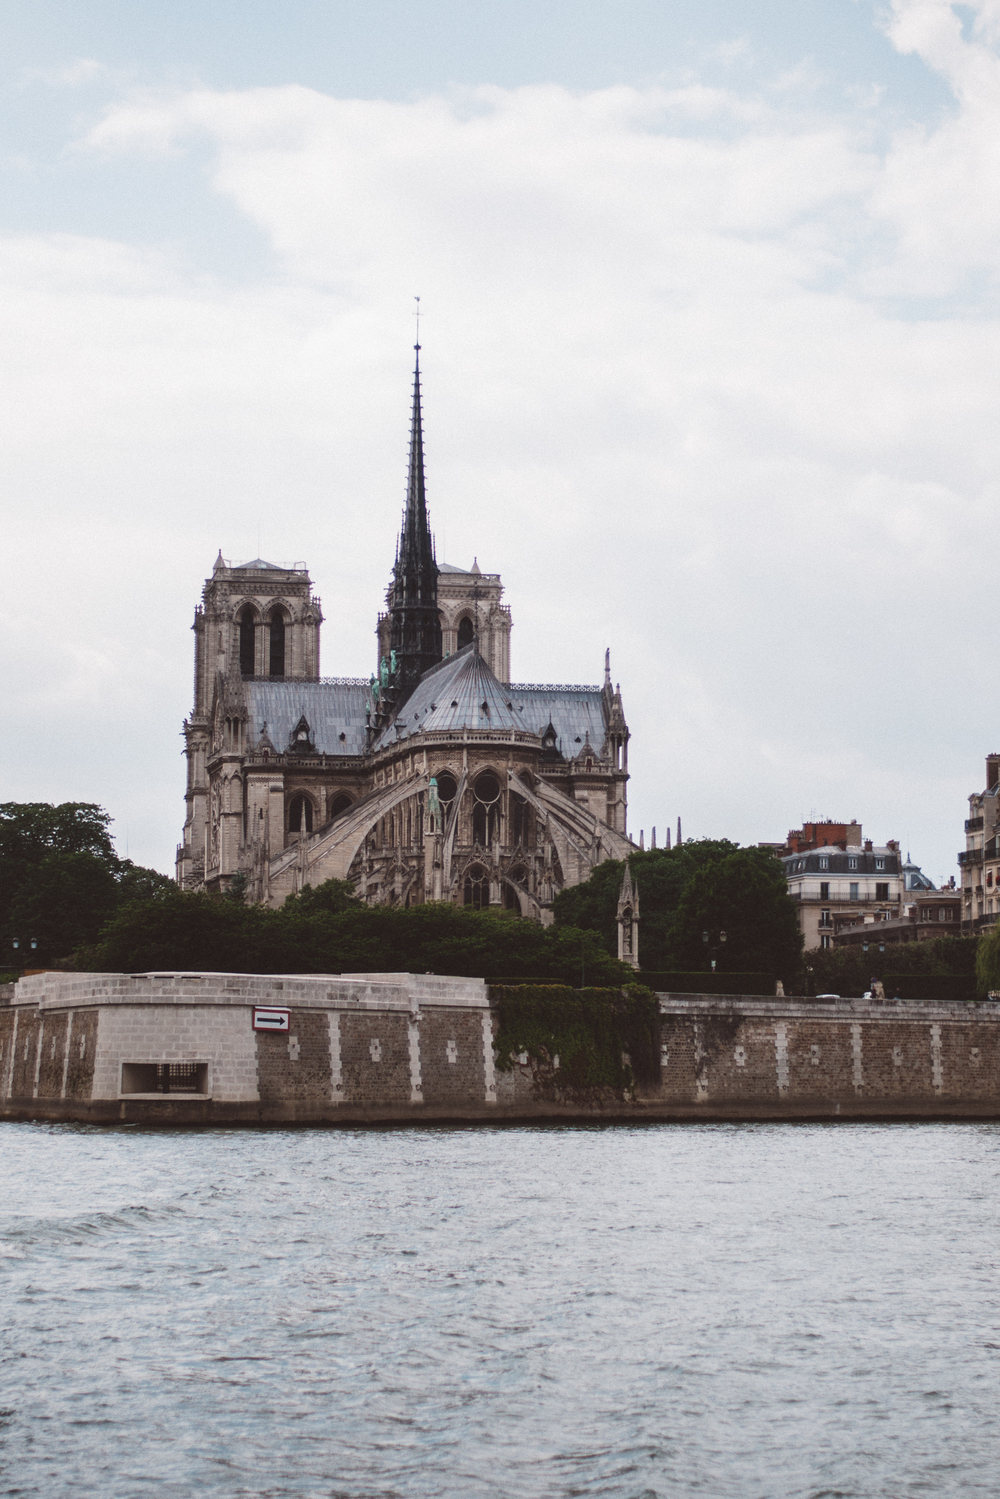 View of Notre Dame from the Seine River in Paris, France.